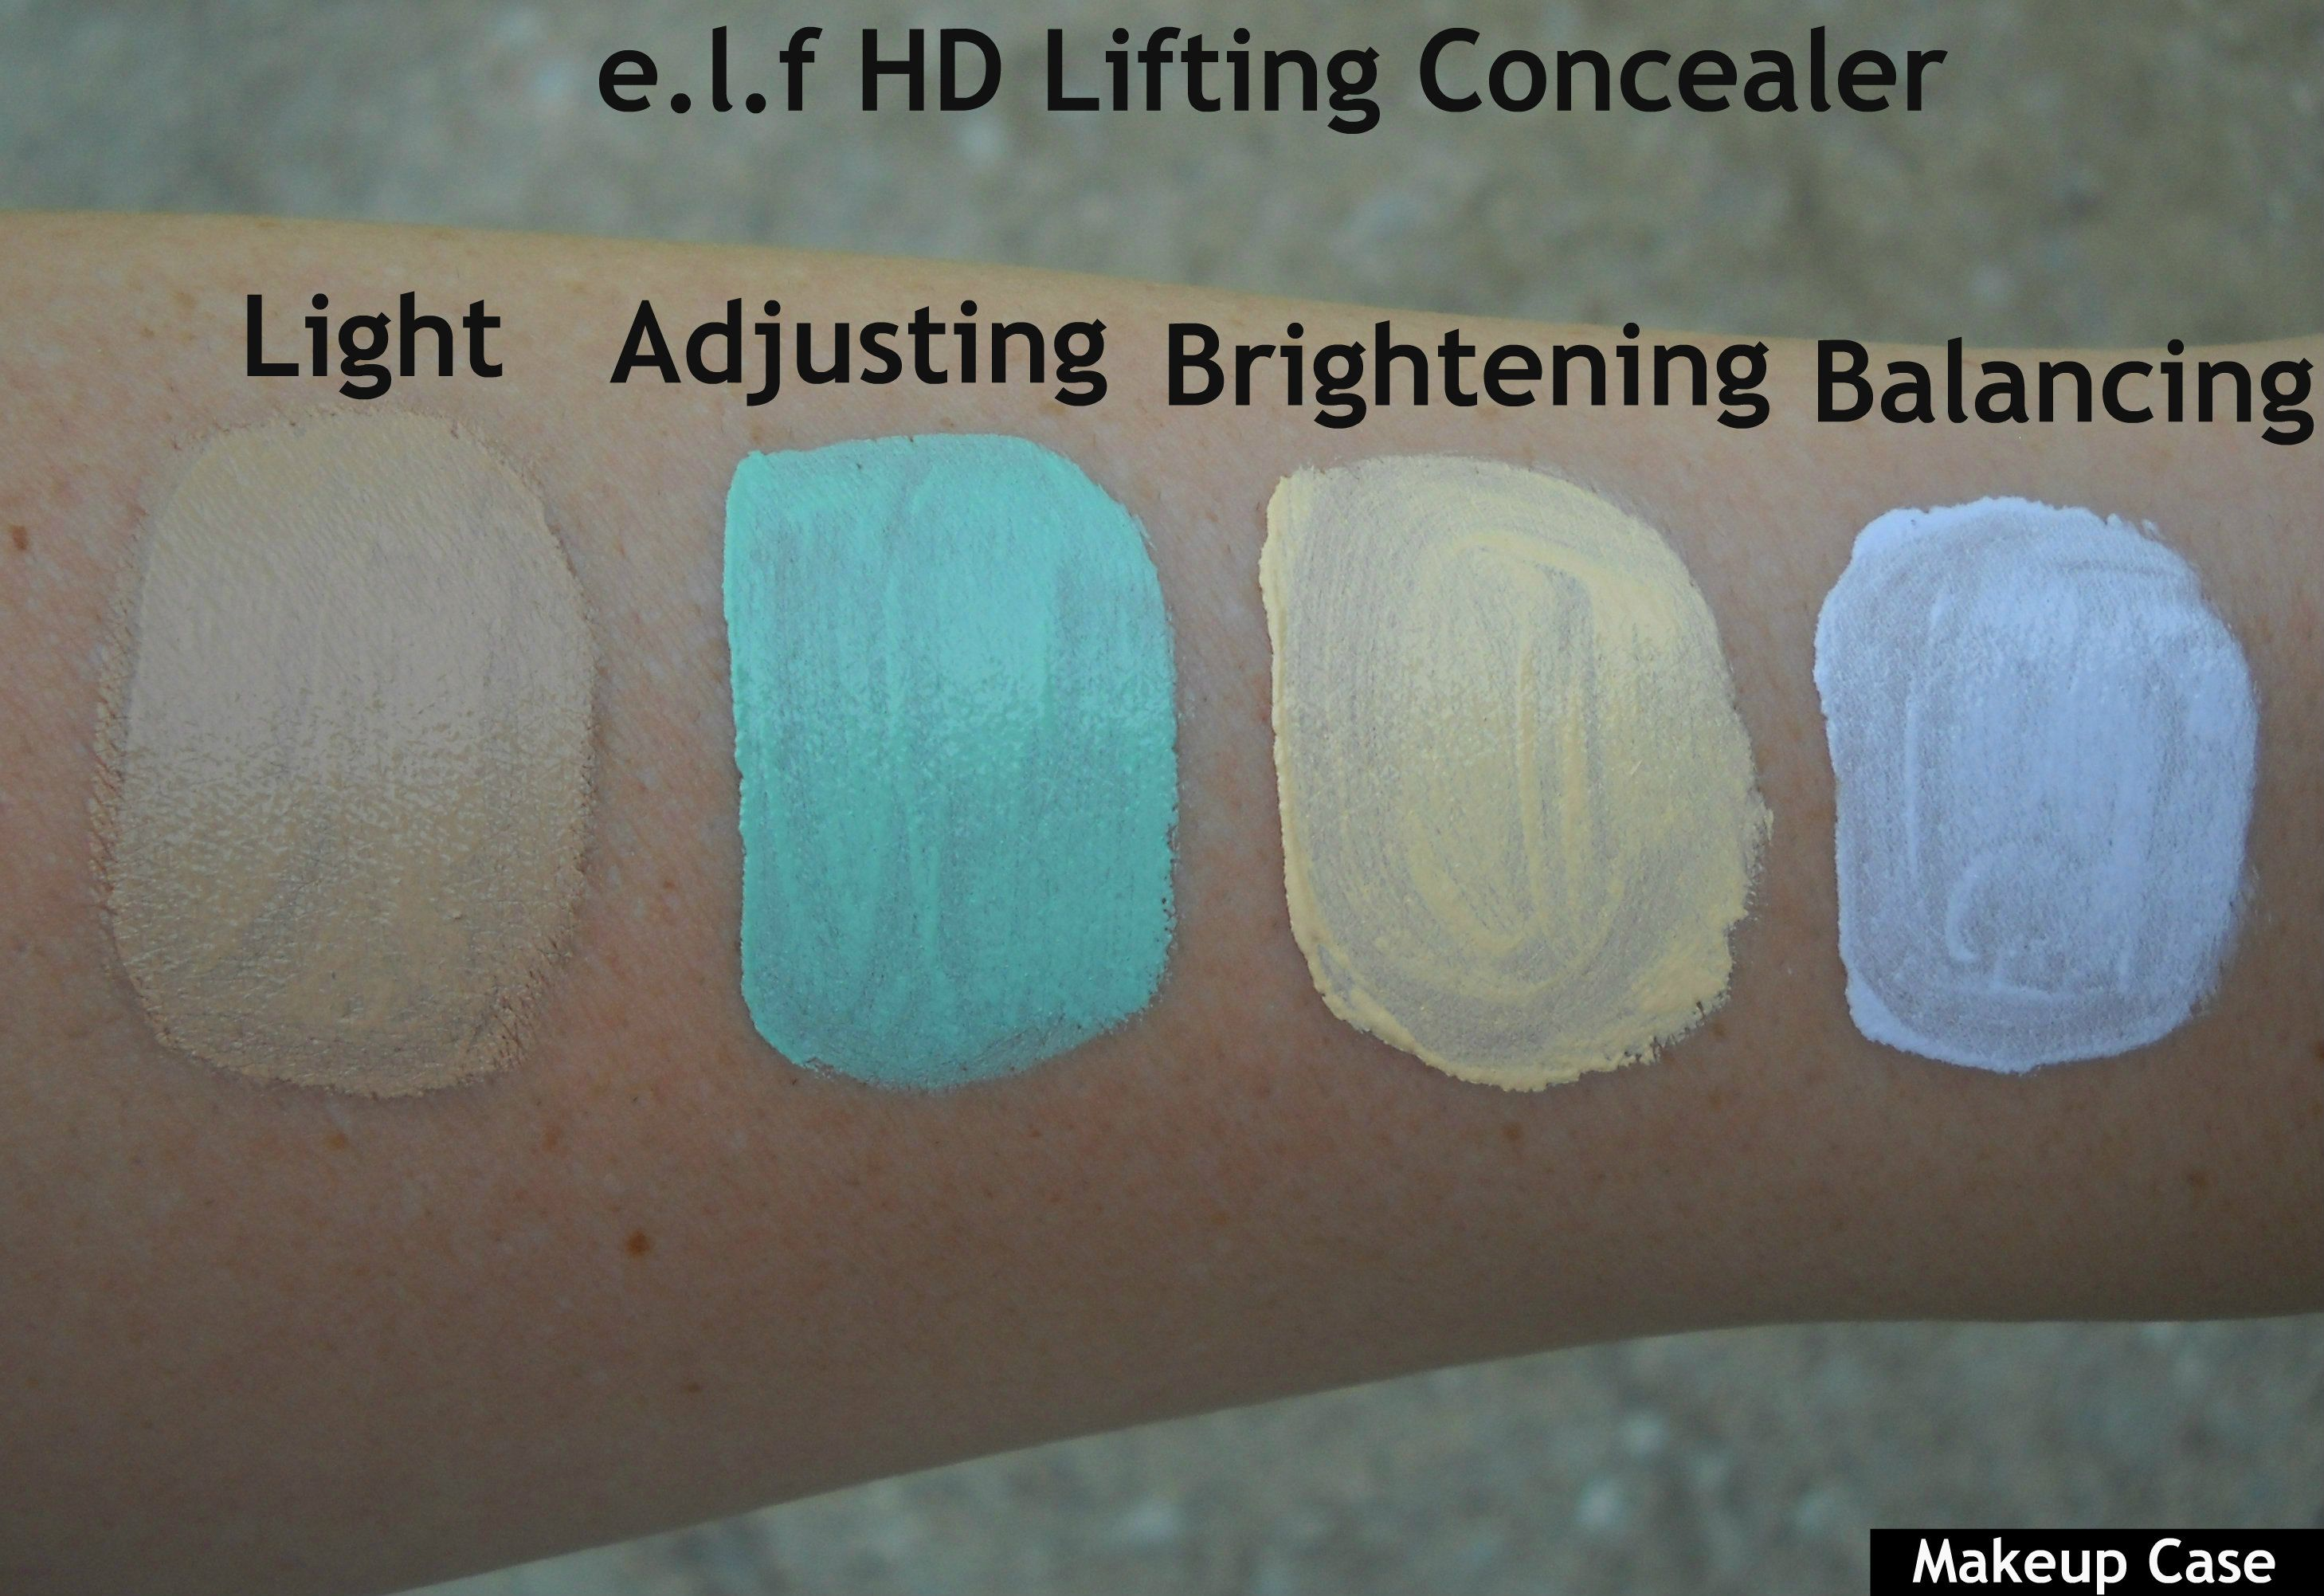 HD Lifting Concealer by e.l.f. #21